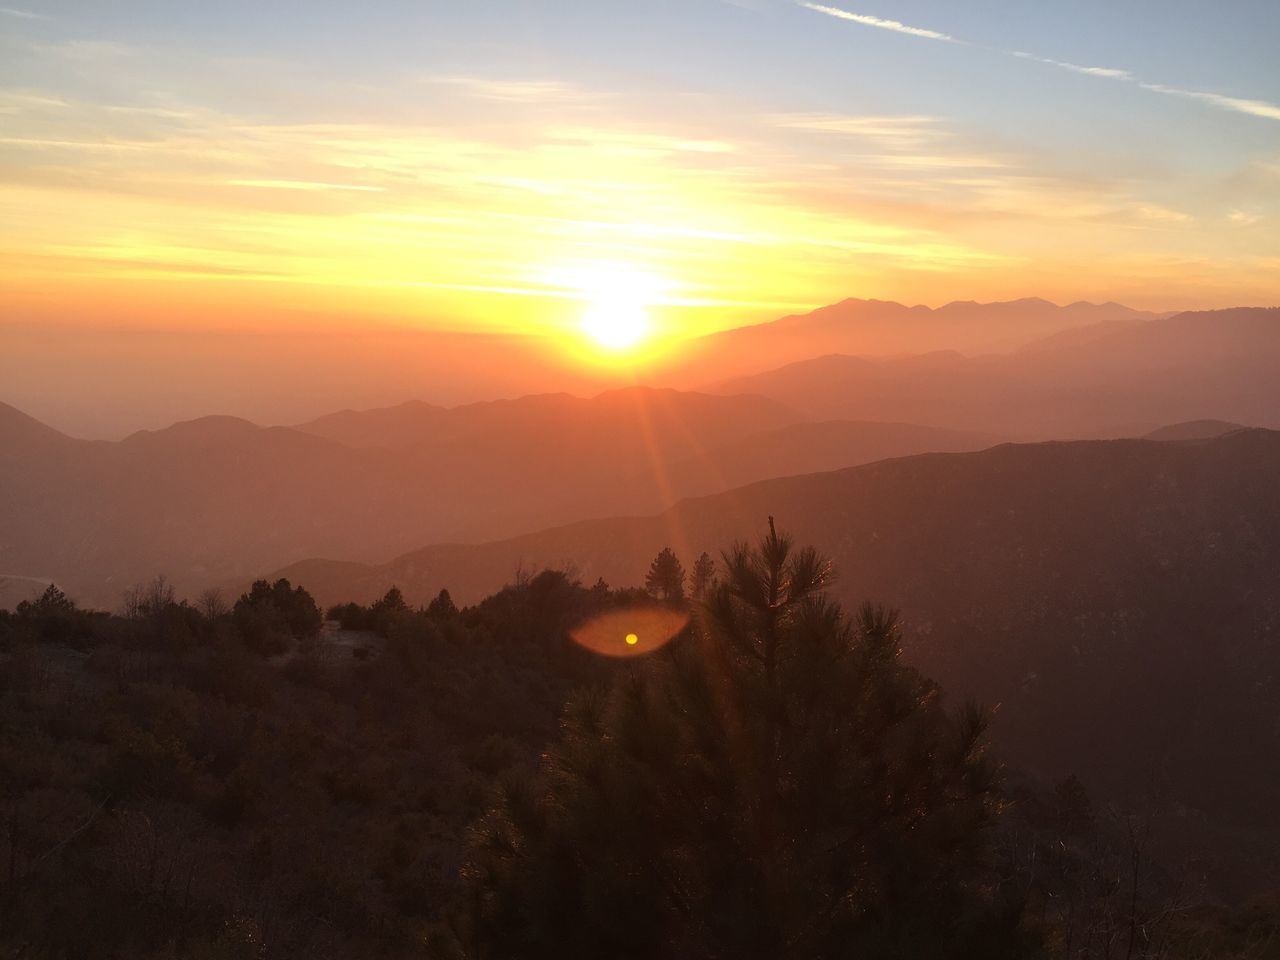 Quality sunset during my drive down from Big Bear Bigbear Bigbearlake BigbearCalifornia Bigbear California Bigbearmountain Sunset Sunset_collection California Sanbernardino Noedit Nofilter NoEditNoFilter Noedit Nofilter Nofilter#noedit Nofilternoedit Enjoying Life Hello World Everything In Its Place Thisismyworld Q Showcase March The Great Outdoors - 2016 EyeEm Awards